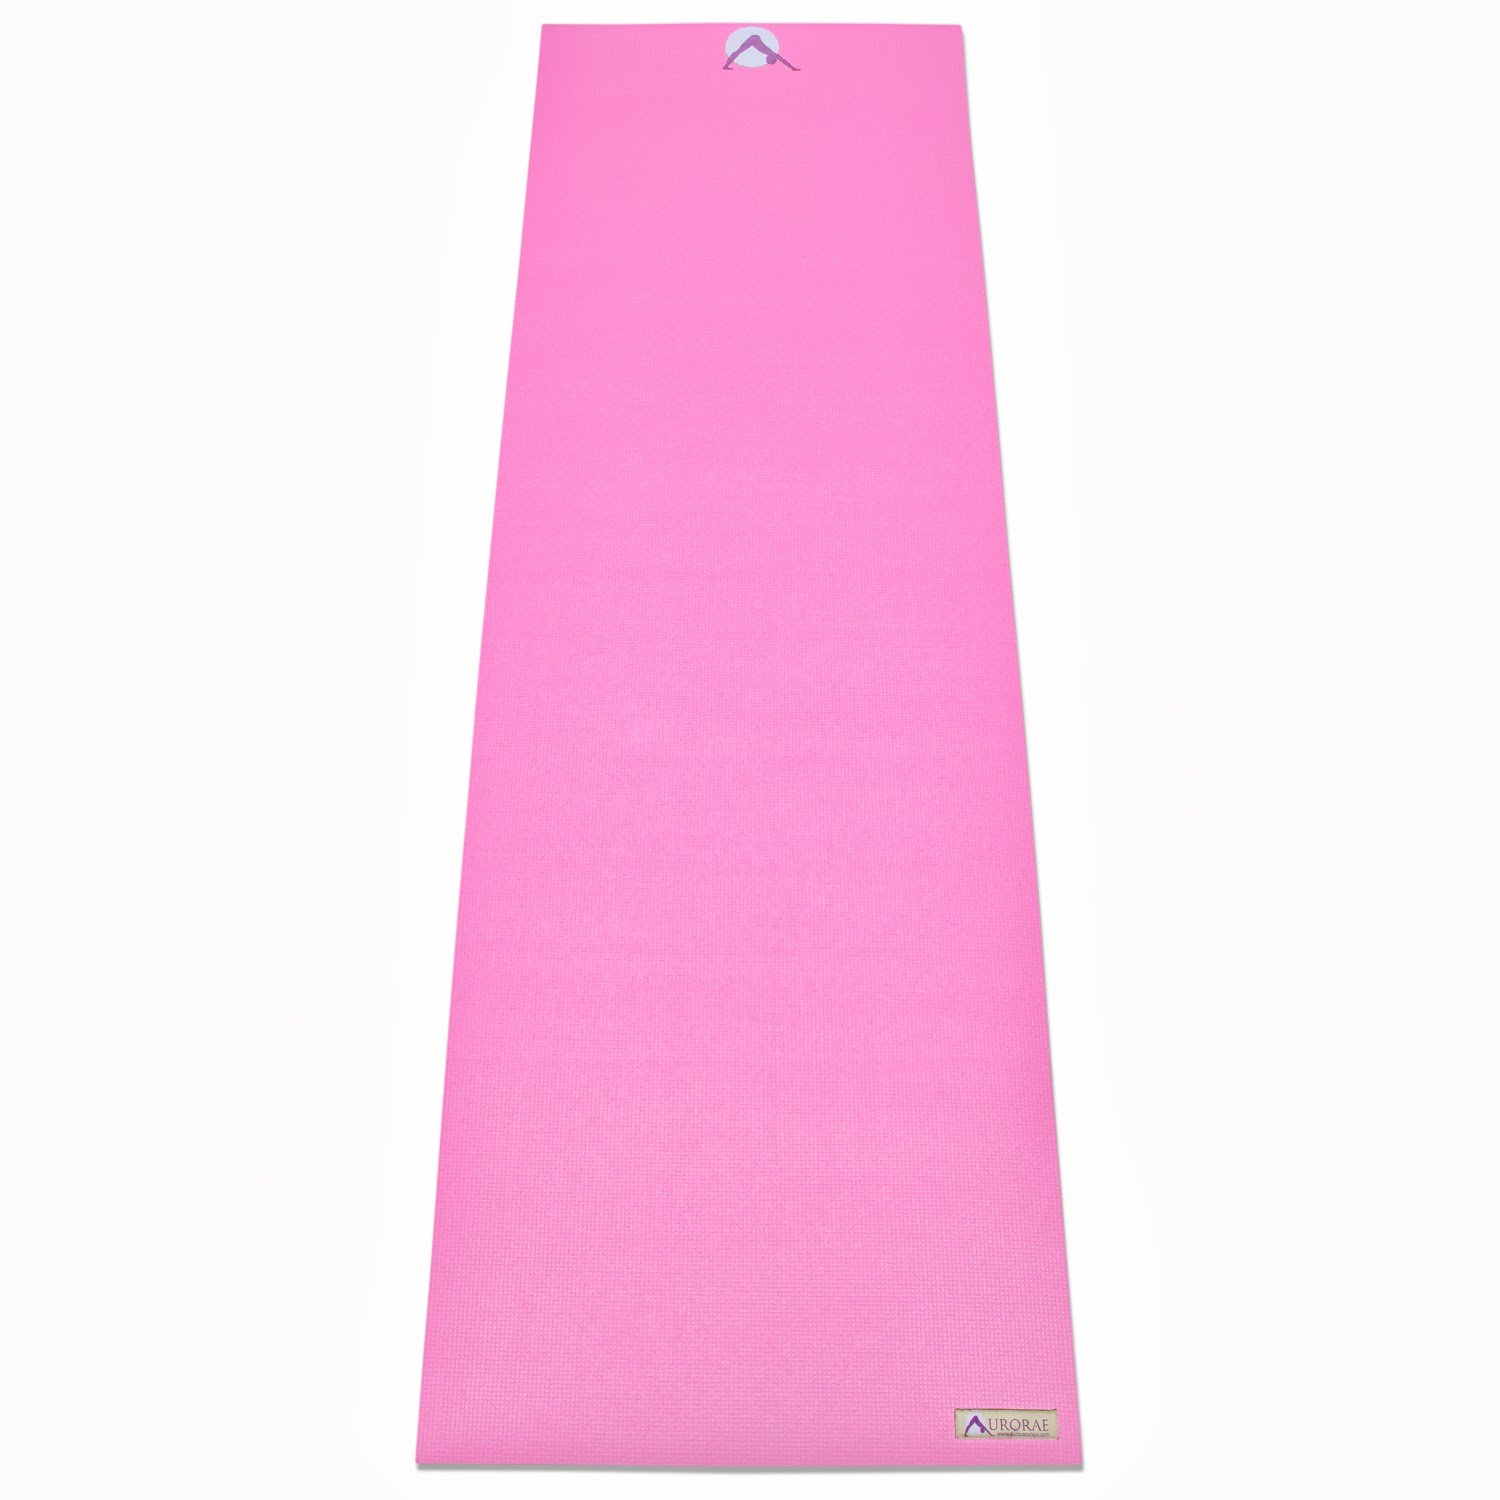 Aurorae Classic/Printed Extra Thick and Long 72'' Premium Eco Safe Yoga Mat with Non Slip Rosin Included